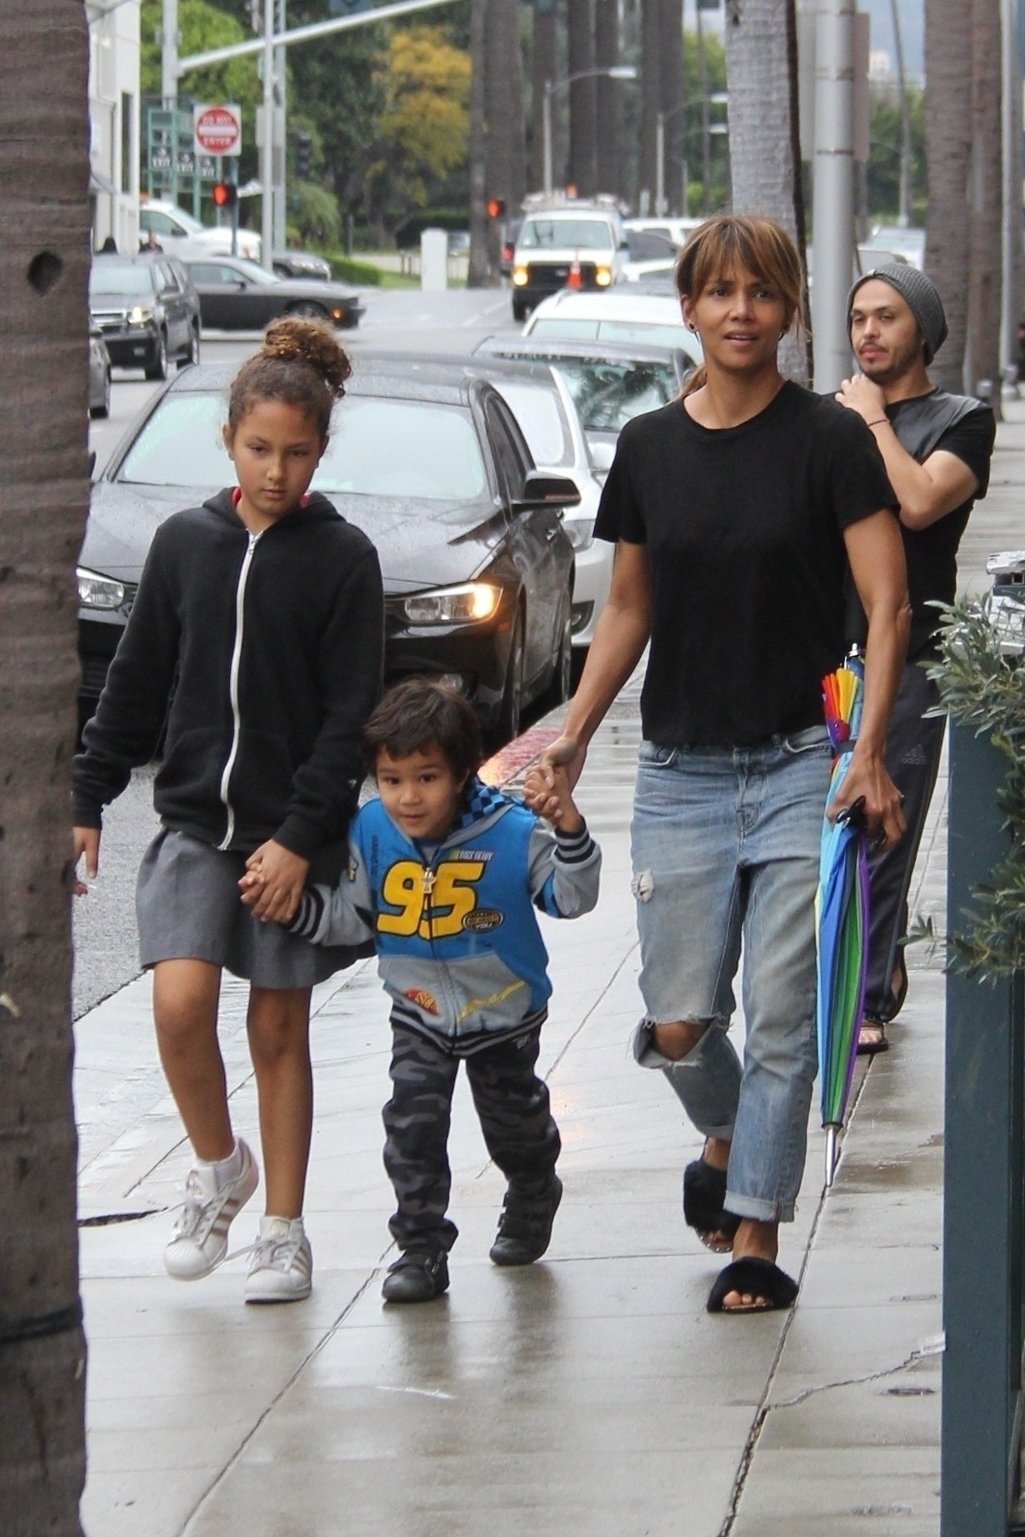 Beverly Hills, CA  - Actress Halle Berry takes her kids Nahla and Maceo to the dentist this afternoon for a routine check up.  Halle carried an umbrella for the expected rain to come down throughout the day.  Pictured: Halle Berry, Nahla Aubry, Maceo Martinez  BACKGRID USA 13 MARCH 2018, Image: 365956174, License: Rights-managed, Restrictions: , Model Release: no, Credit line: Profimedia, AKM-GSI